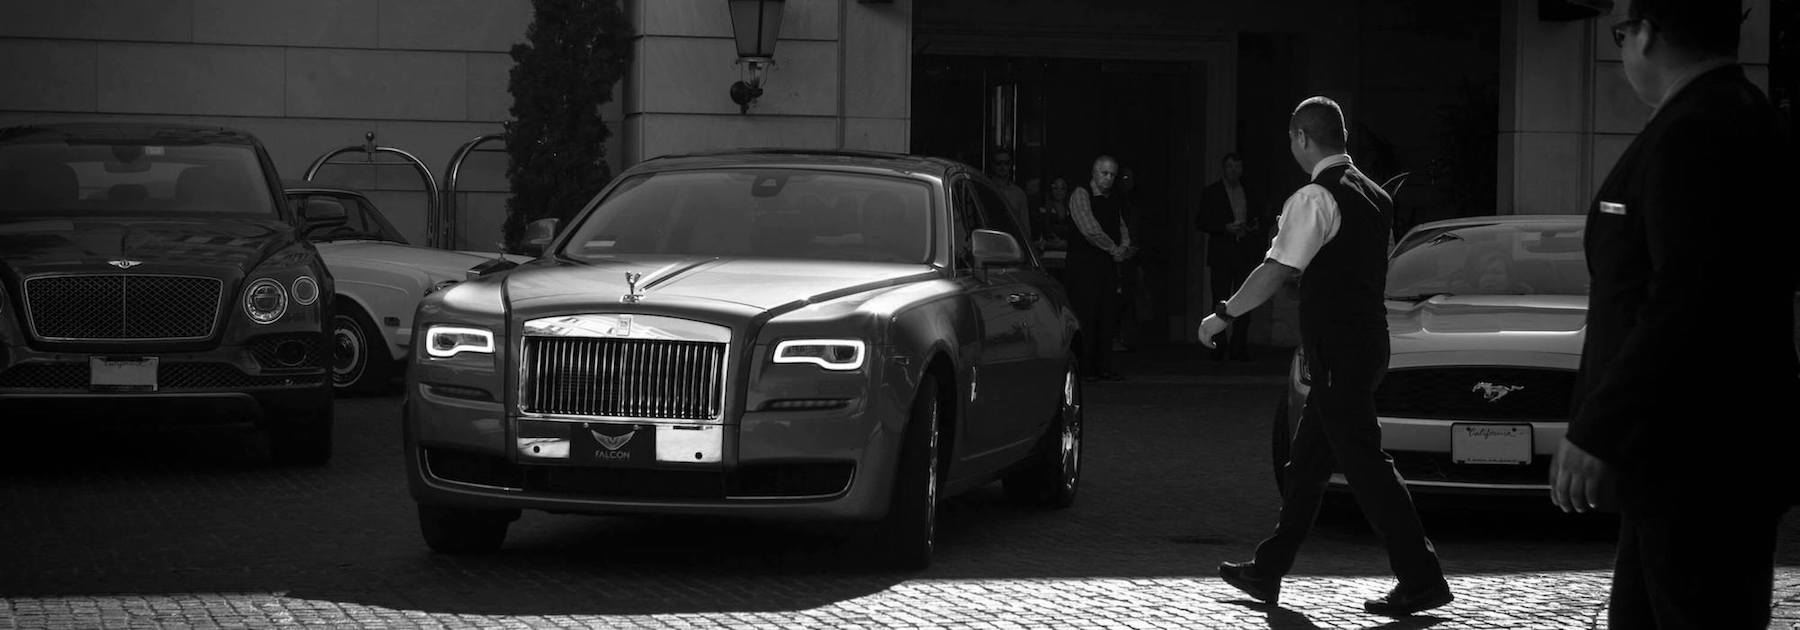 British Encounter: Rolls-Royce VS Bentley